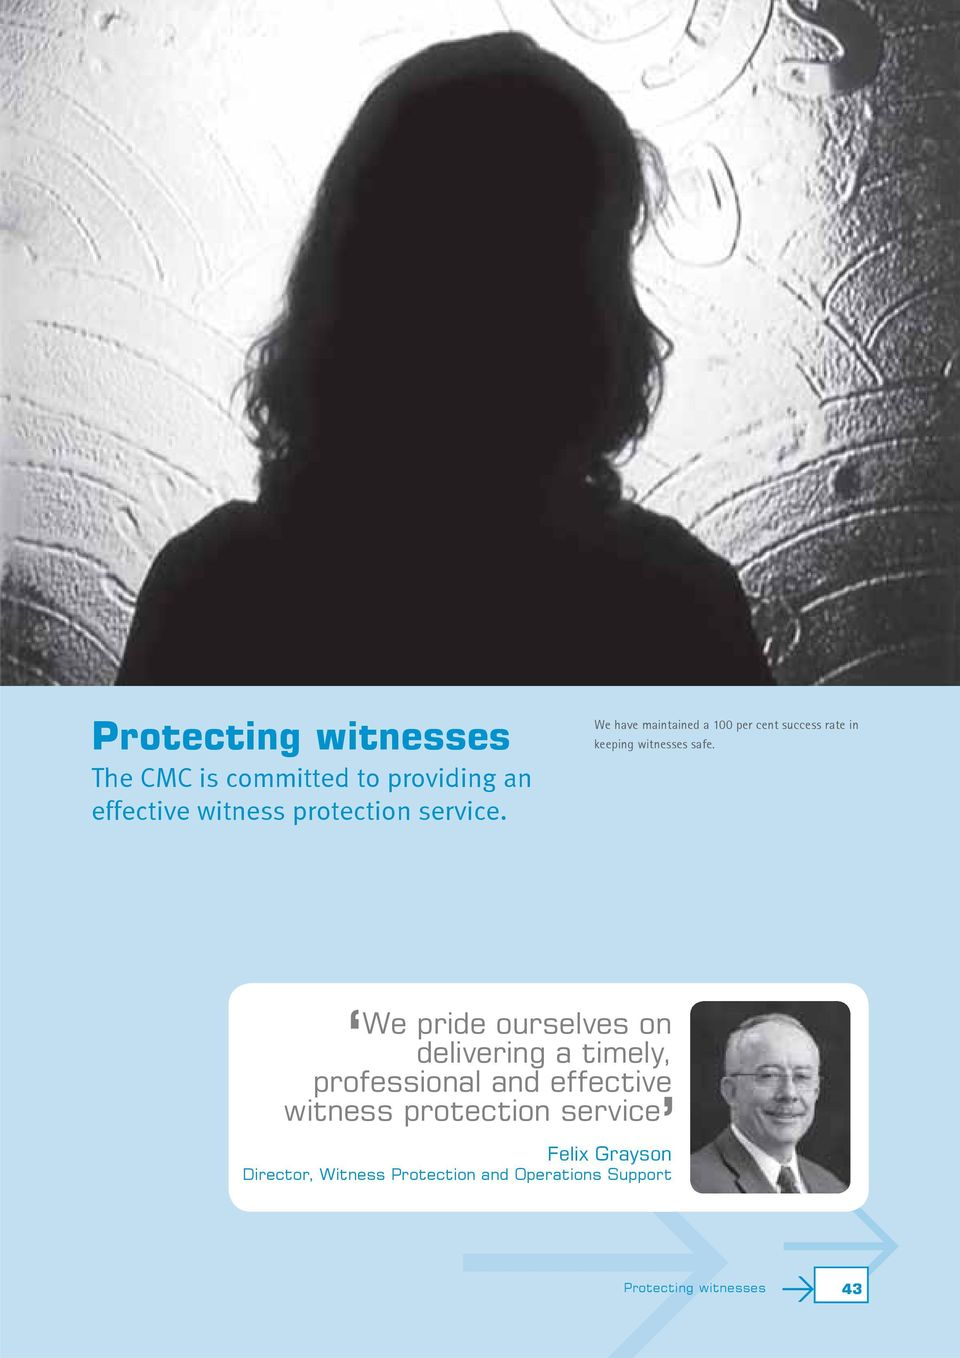 We pride ourselves on delivering a timely, professional and effective witness protection